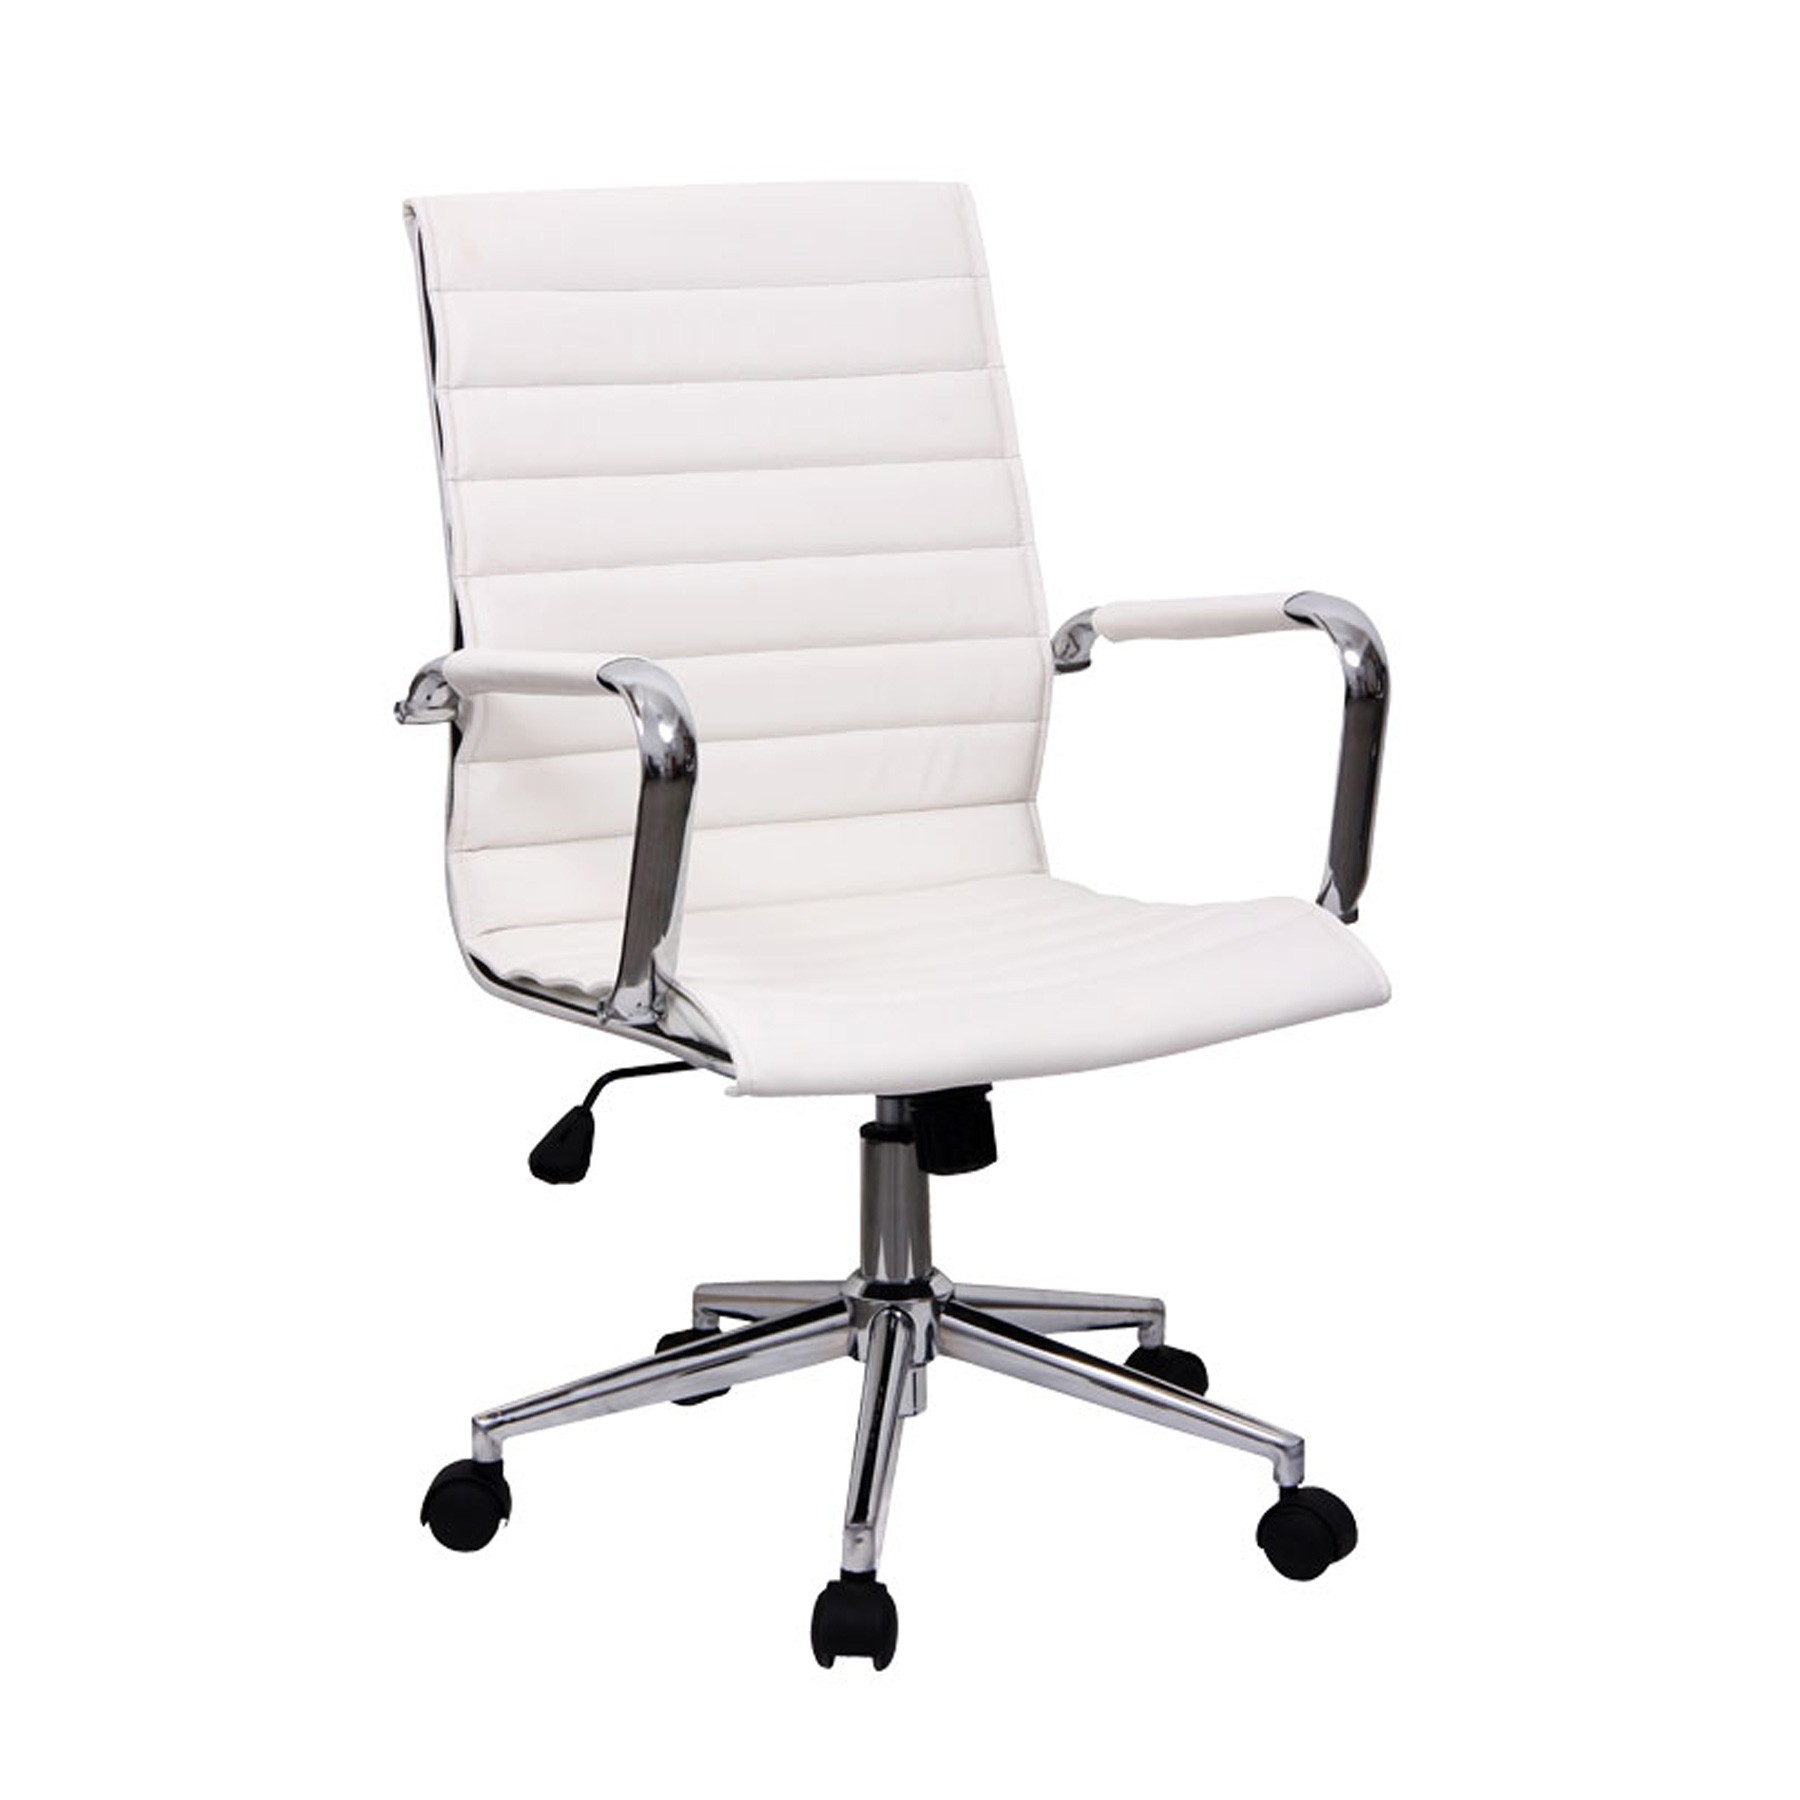 New white office chair nsopito